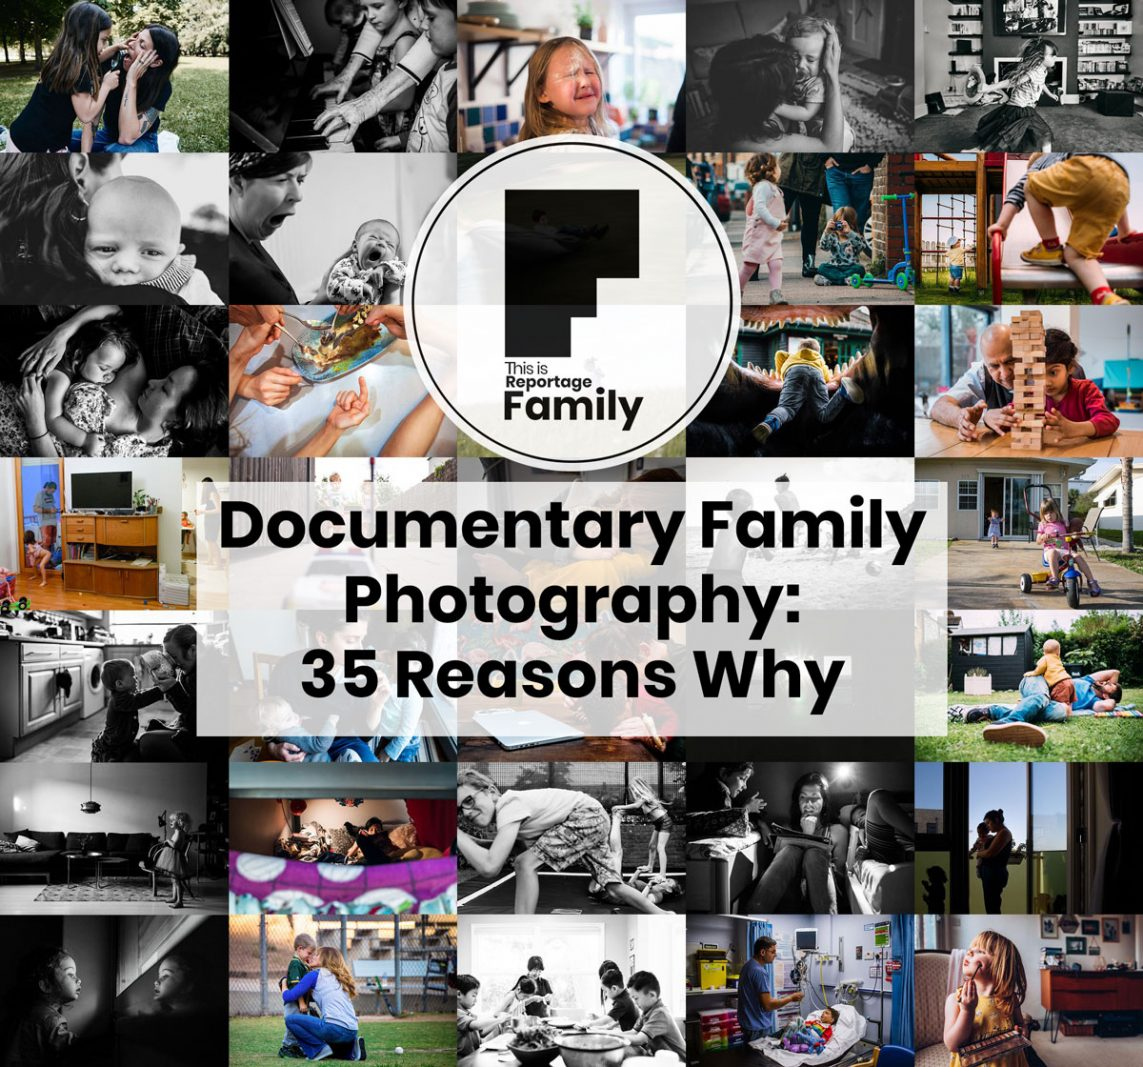 documentary family photography - 35 reasons why